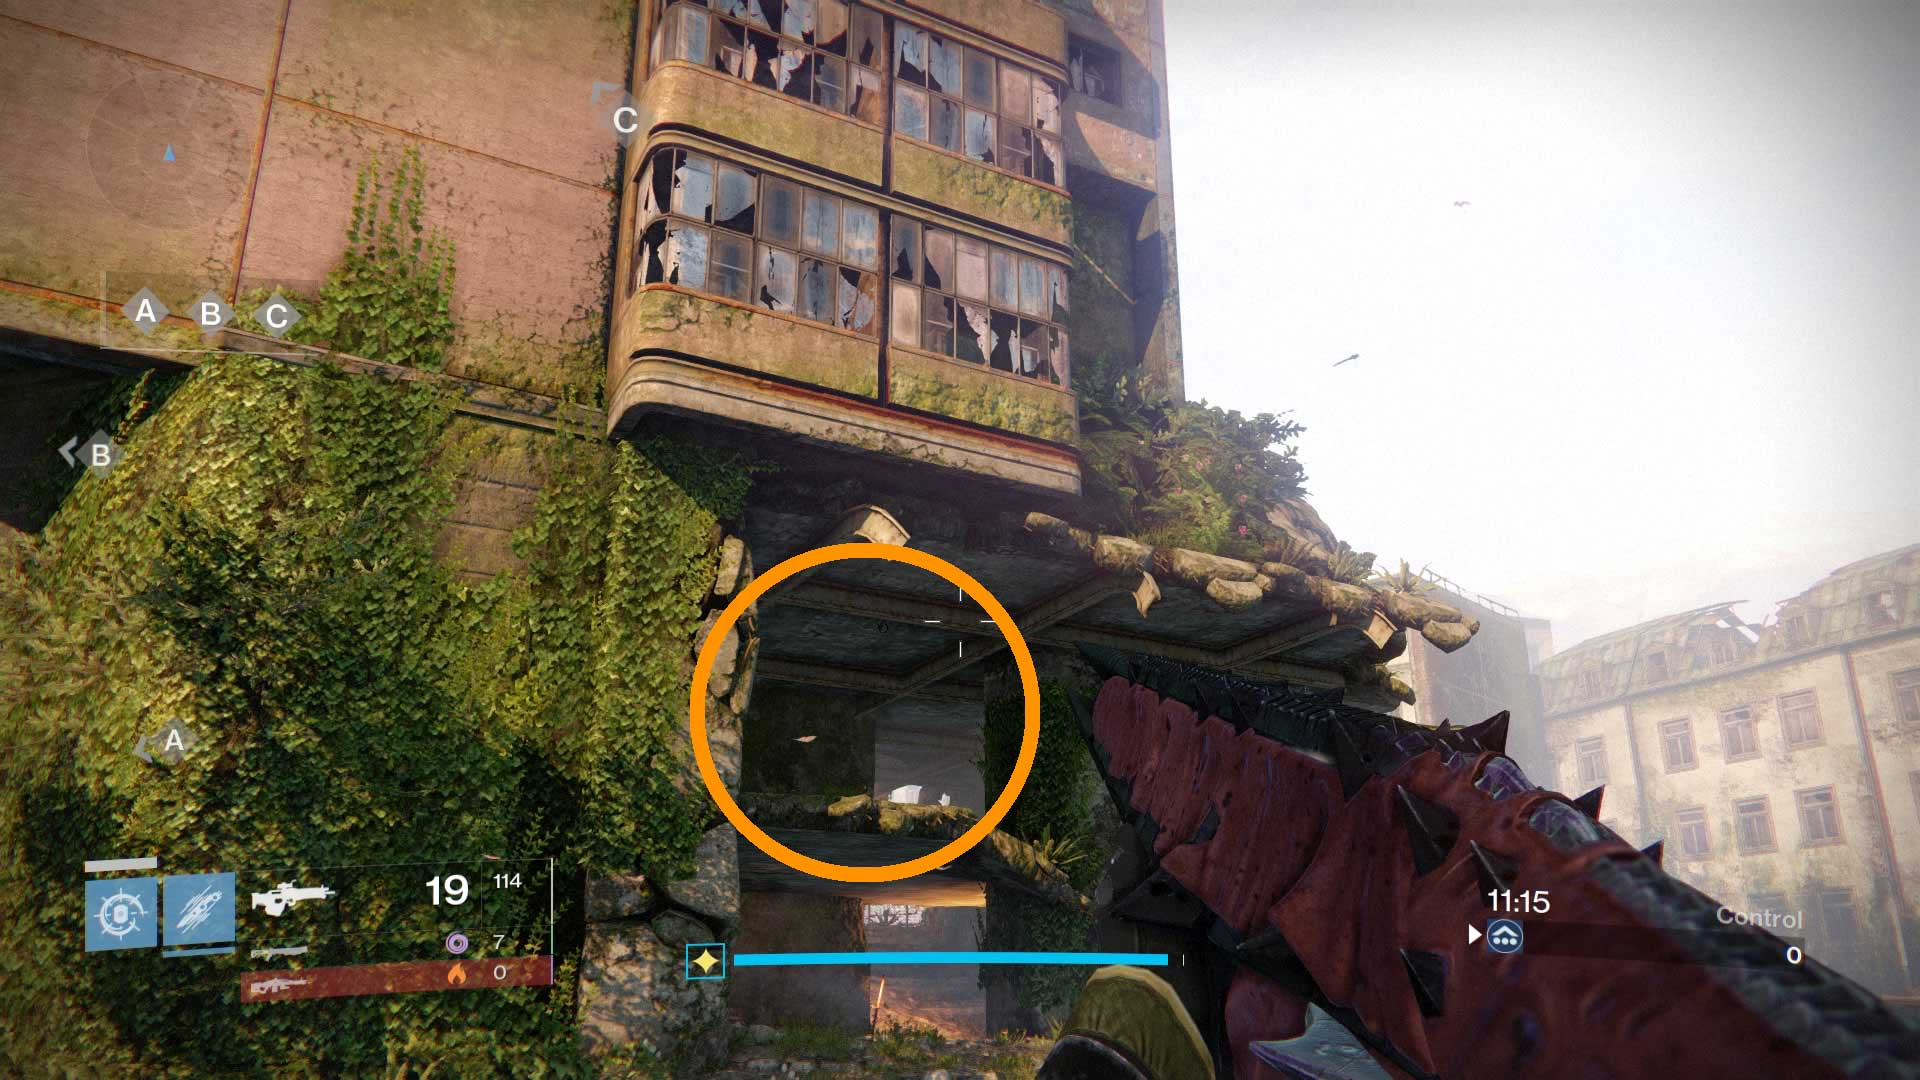 Destiny rise of iron new crucible map dead ghosts locations visual